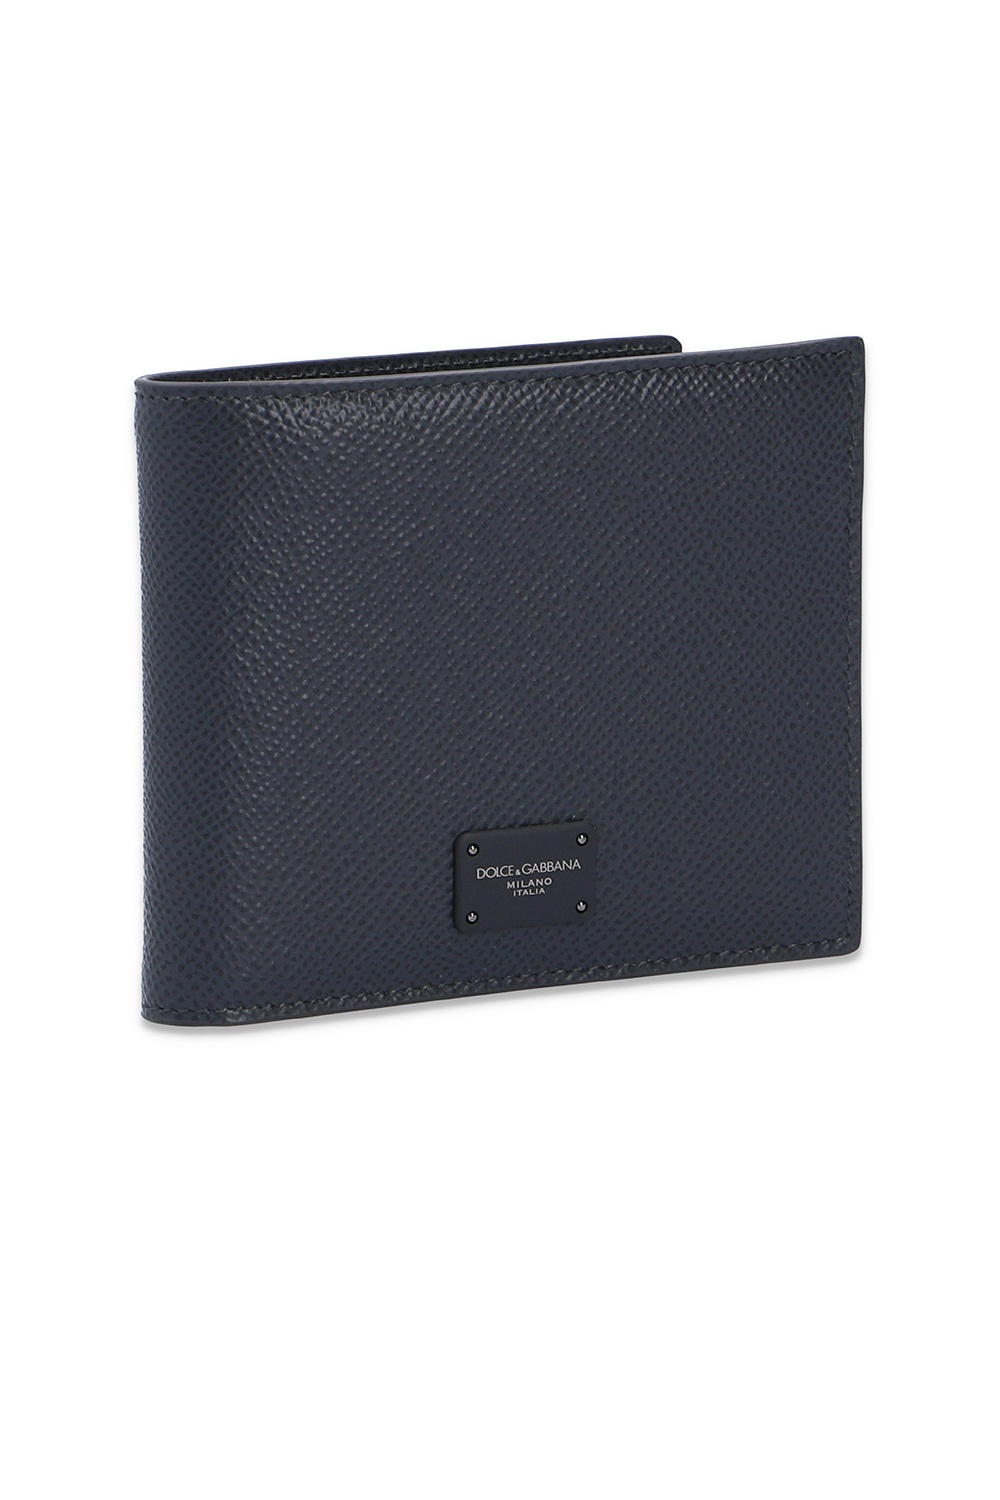 Dolce & Gabbana Folding wallet with logo